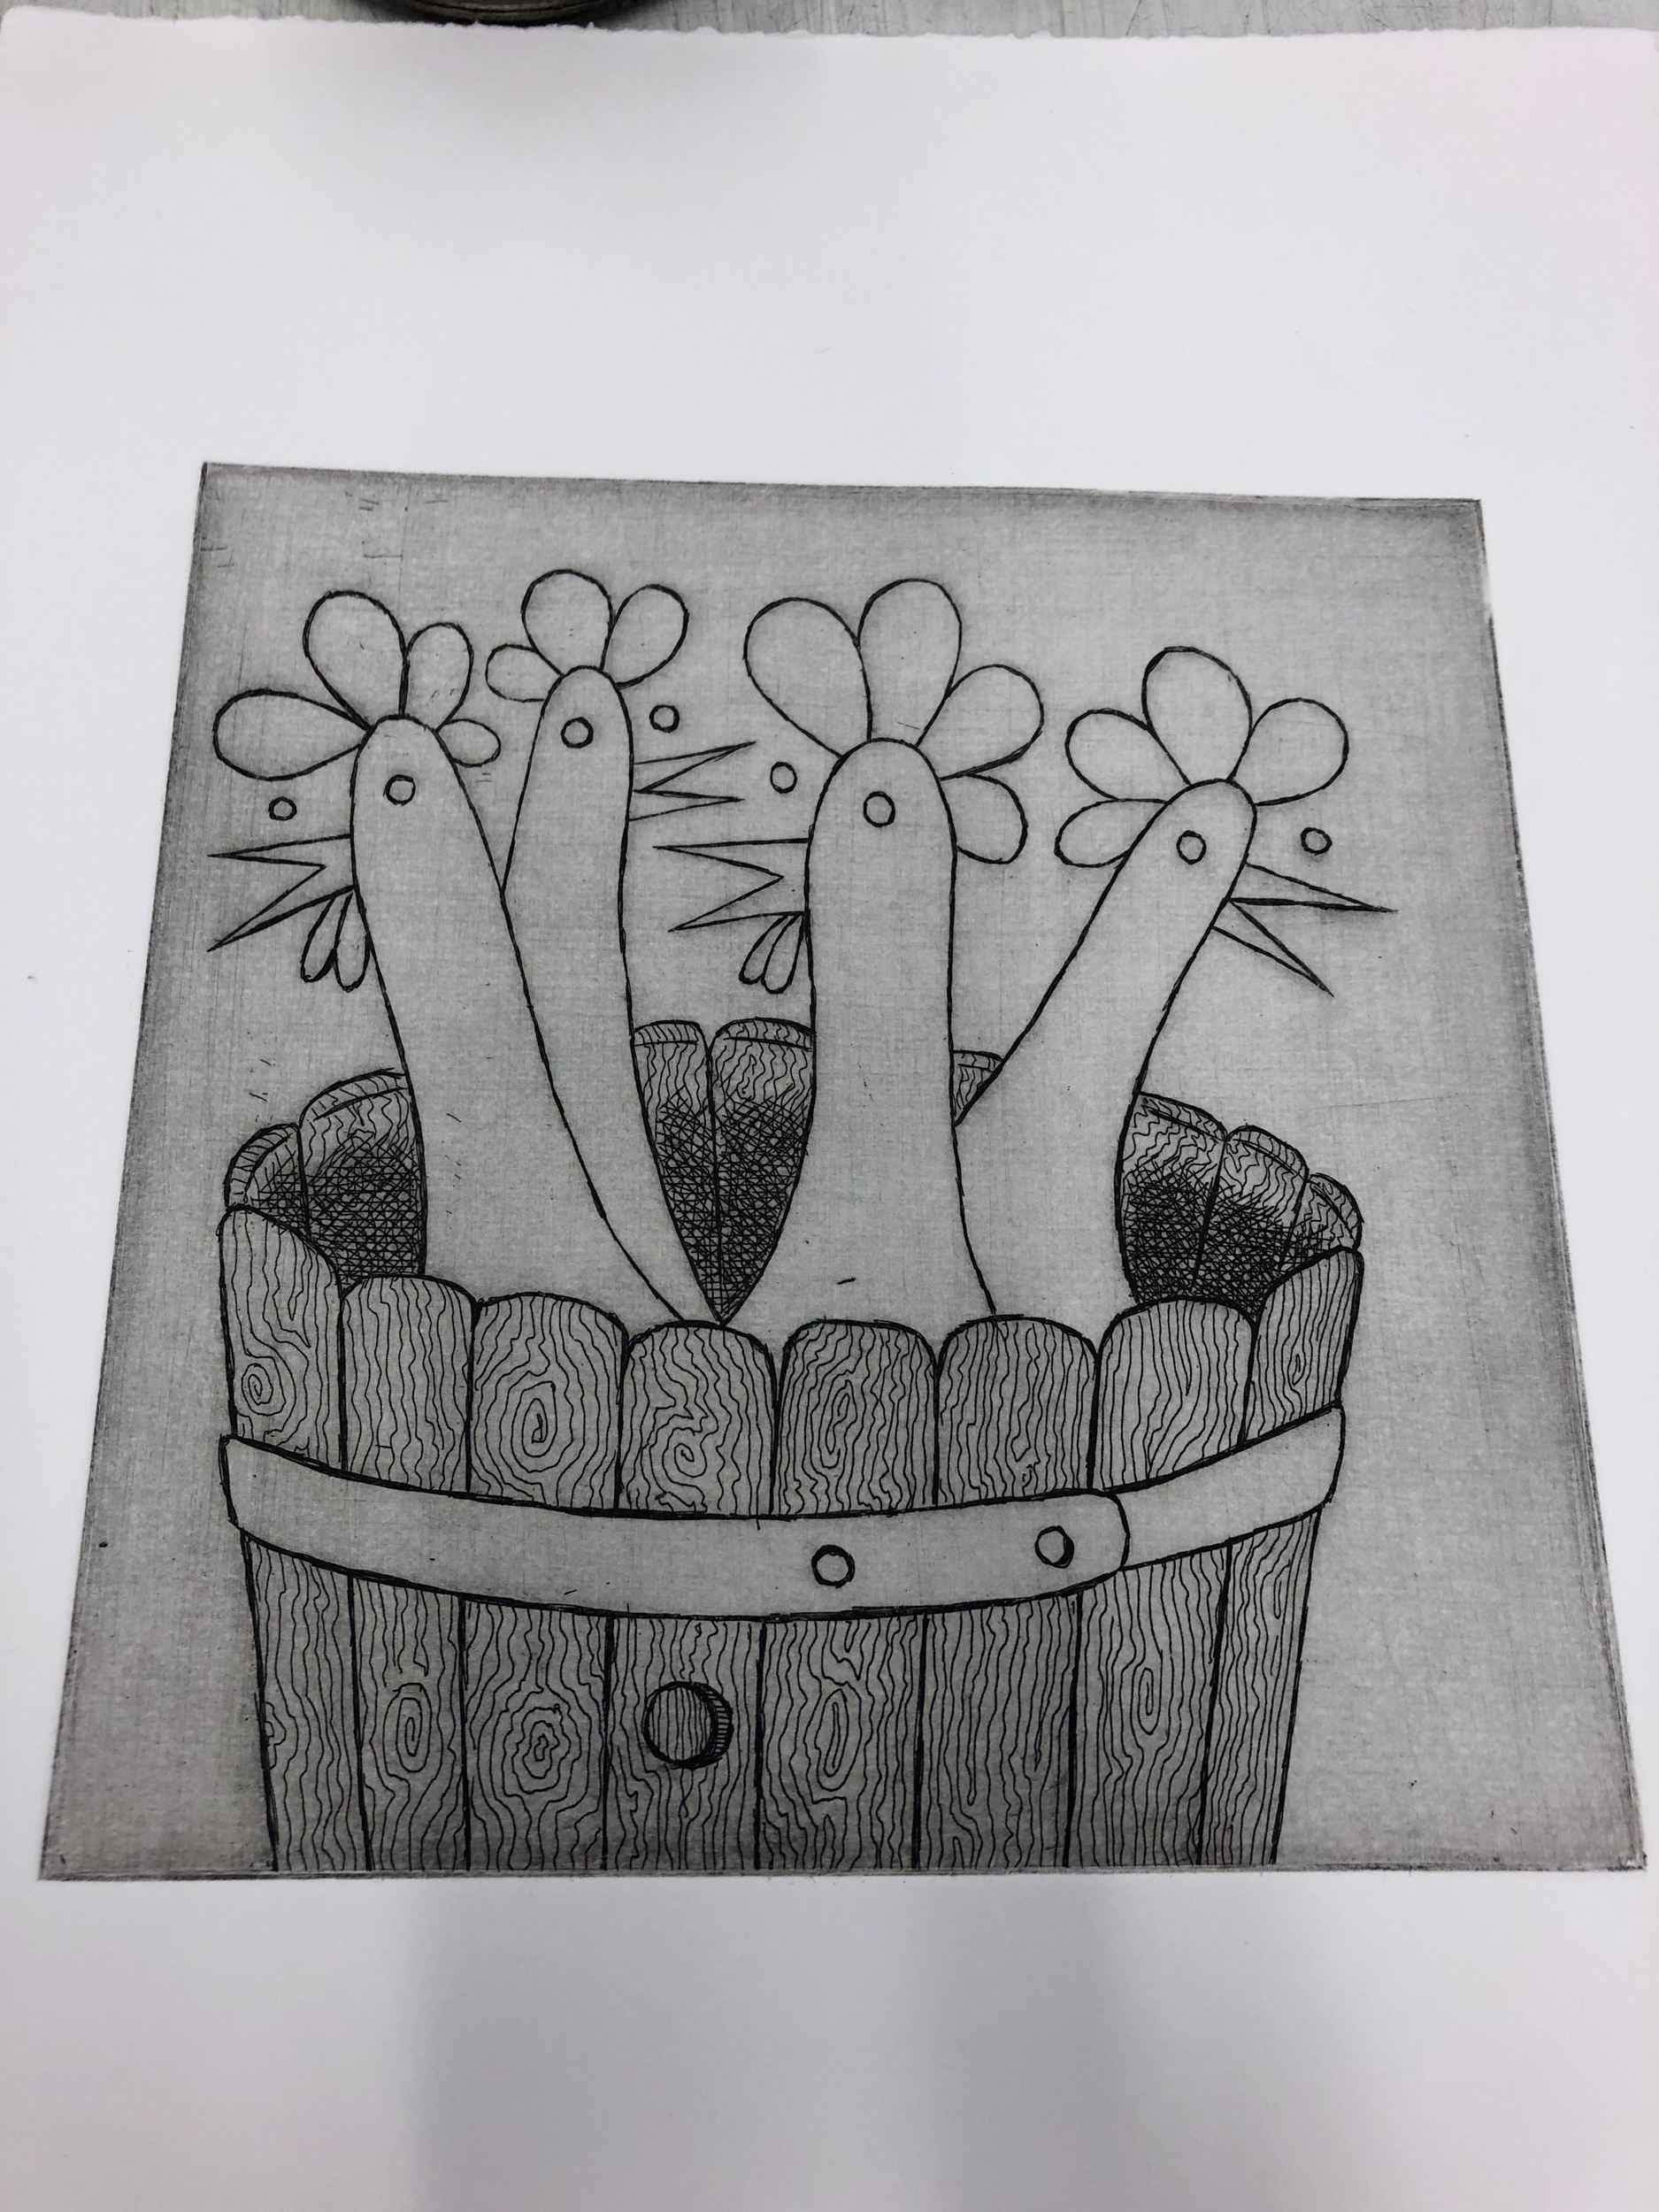 The first state of my Chickens in a Barrel print.